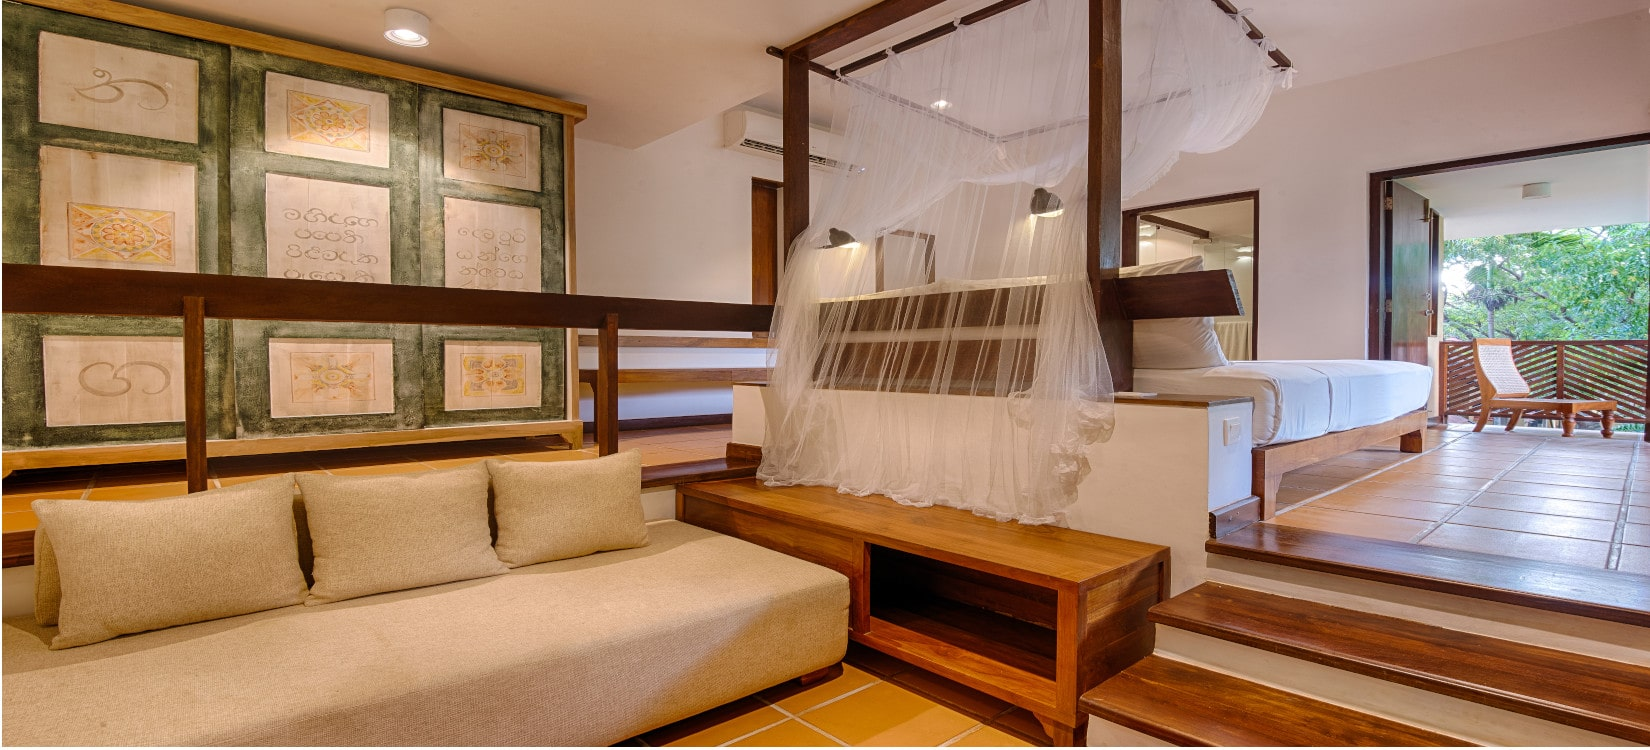 Classic Room with treatments -min